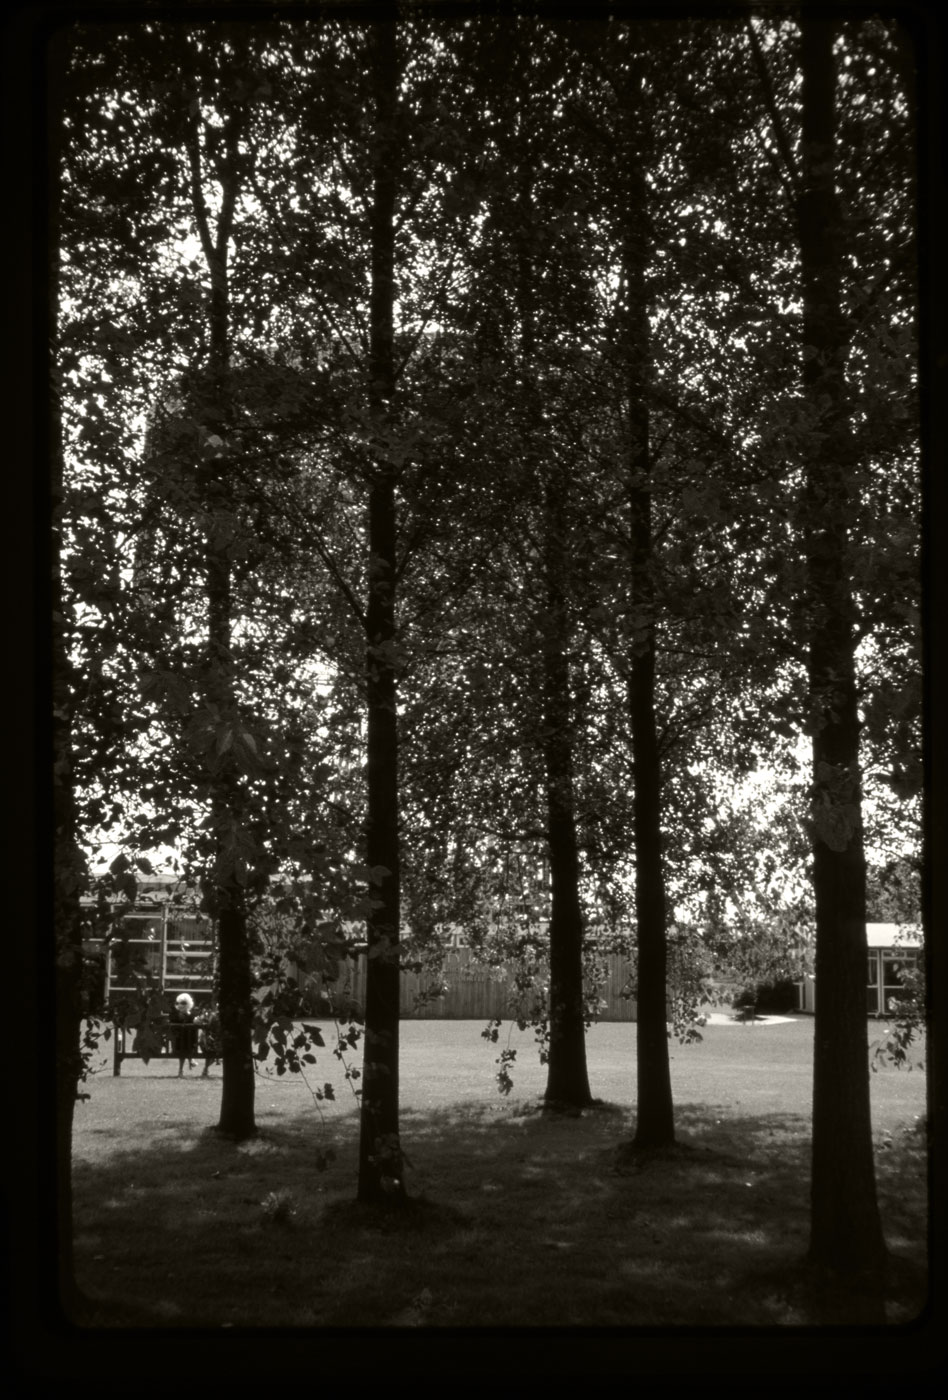 From the 35mm archive.Jodrell bank seen through the trees. From the late 70s.